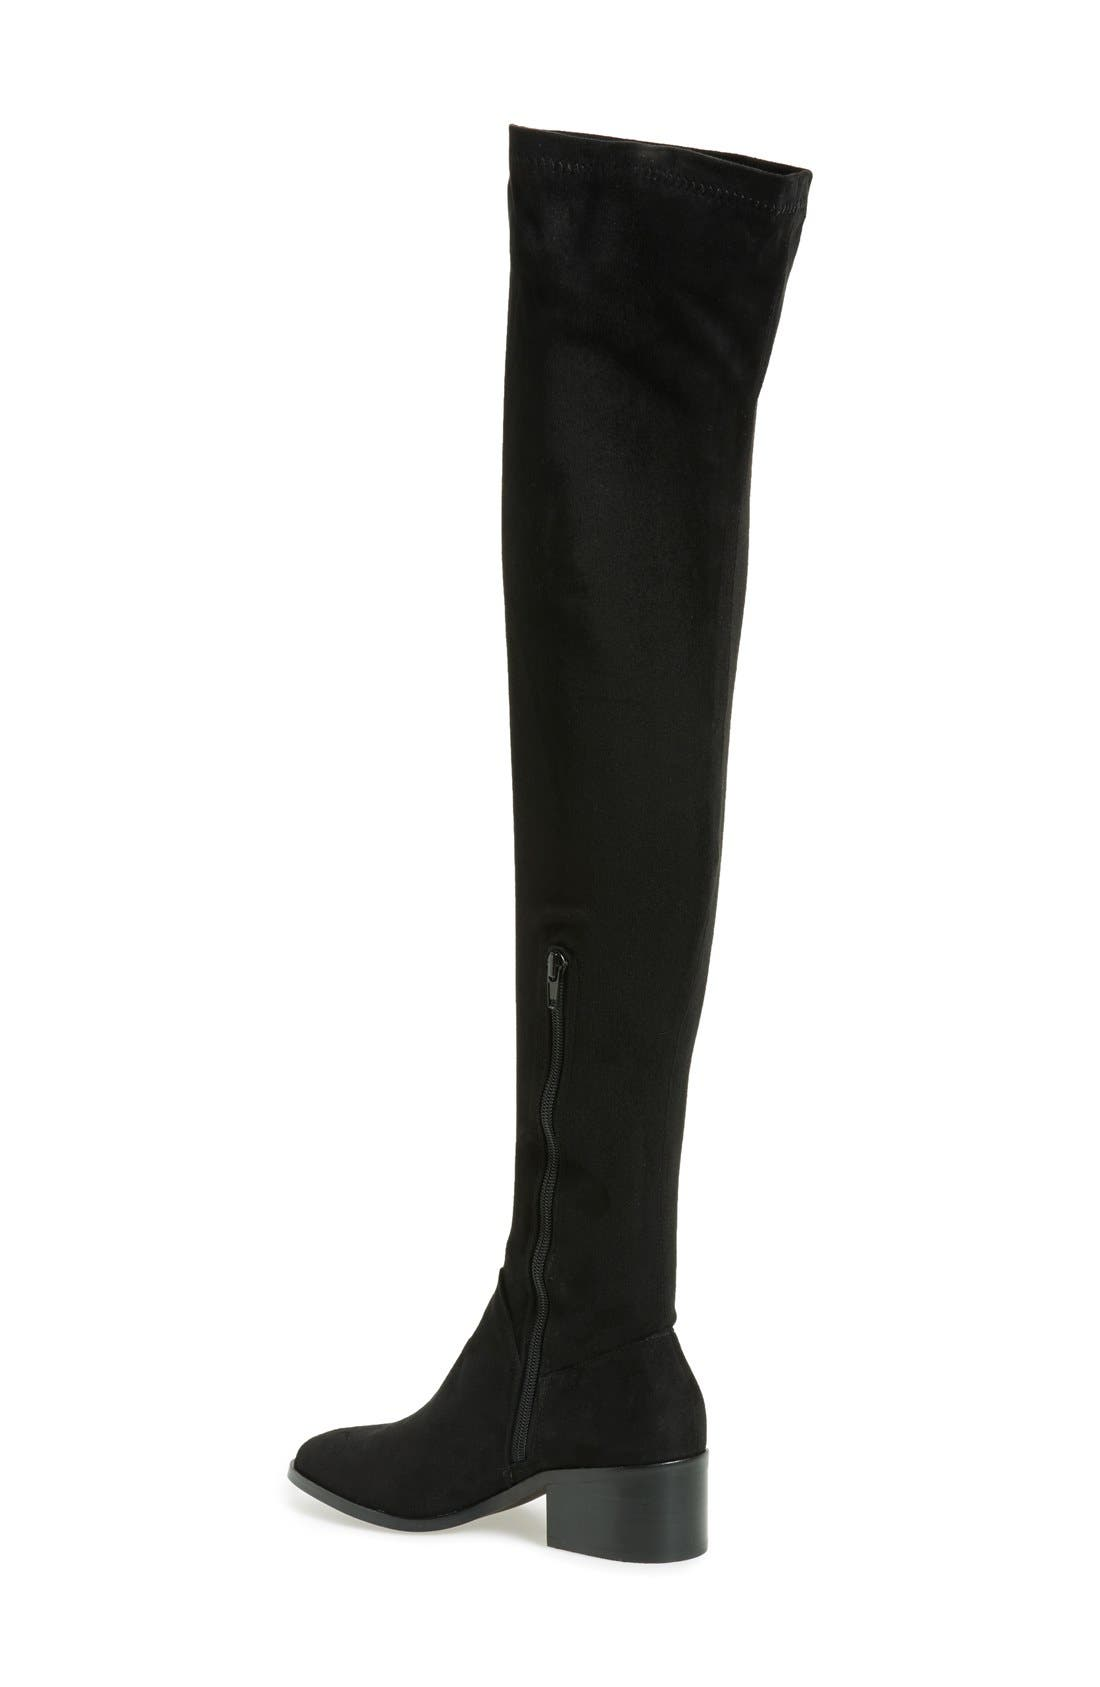 STEVE MADDEN,                             Gabriana Stretch Over the Knee Boot,                             Alternate thumbnail 5, color,                             001